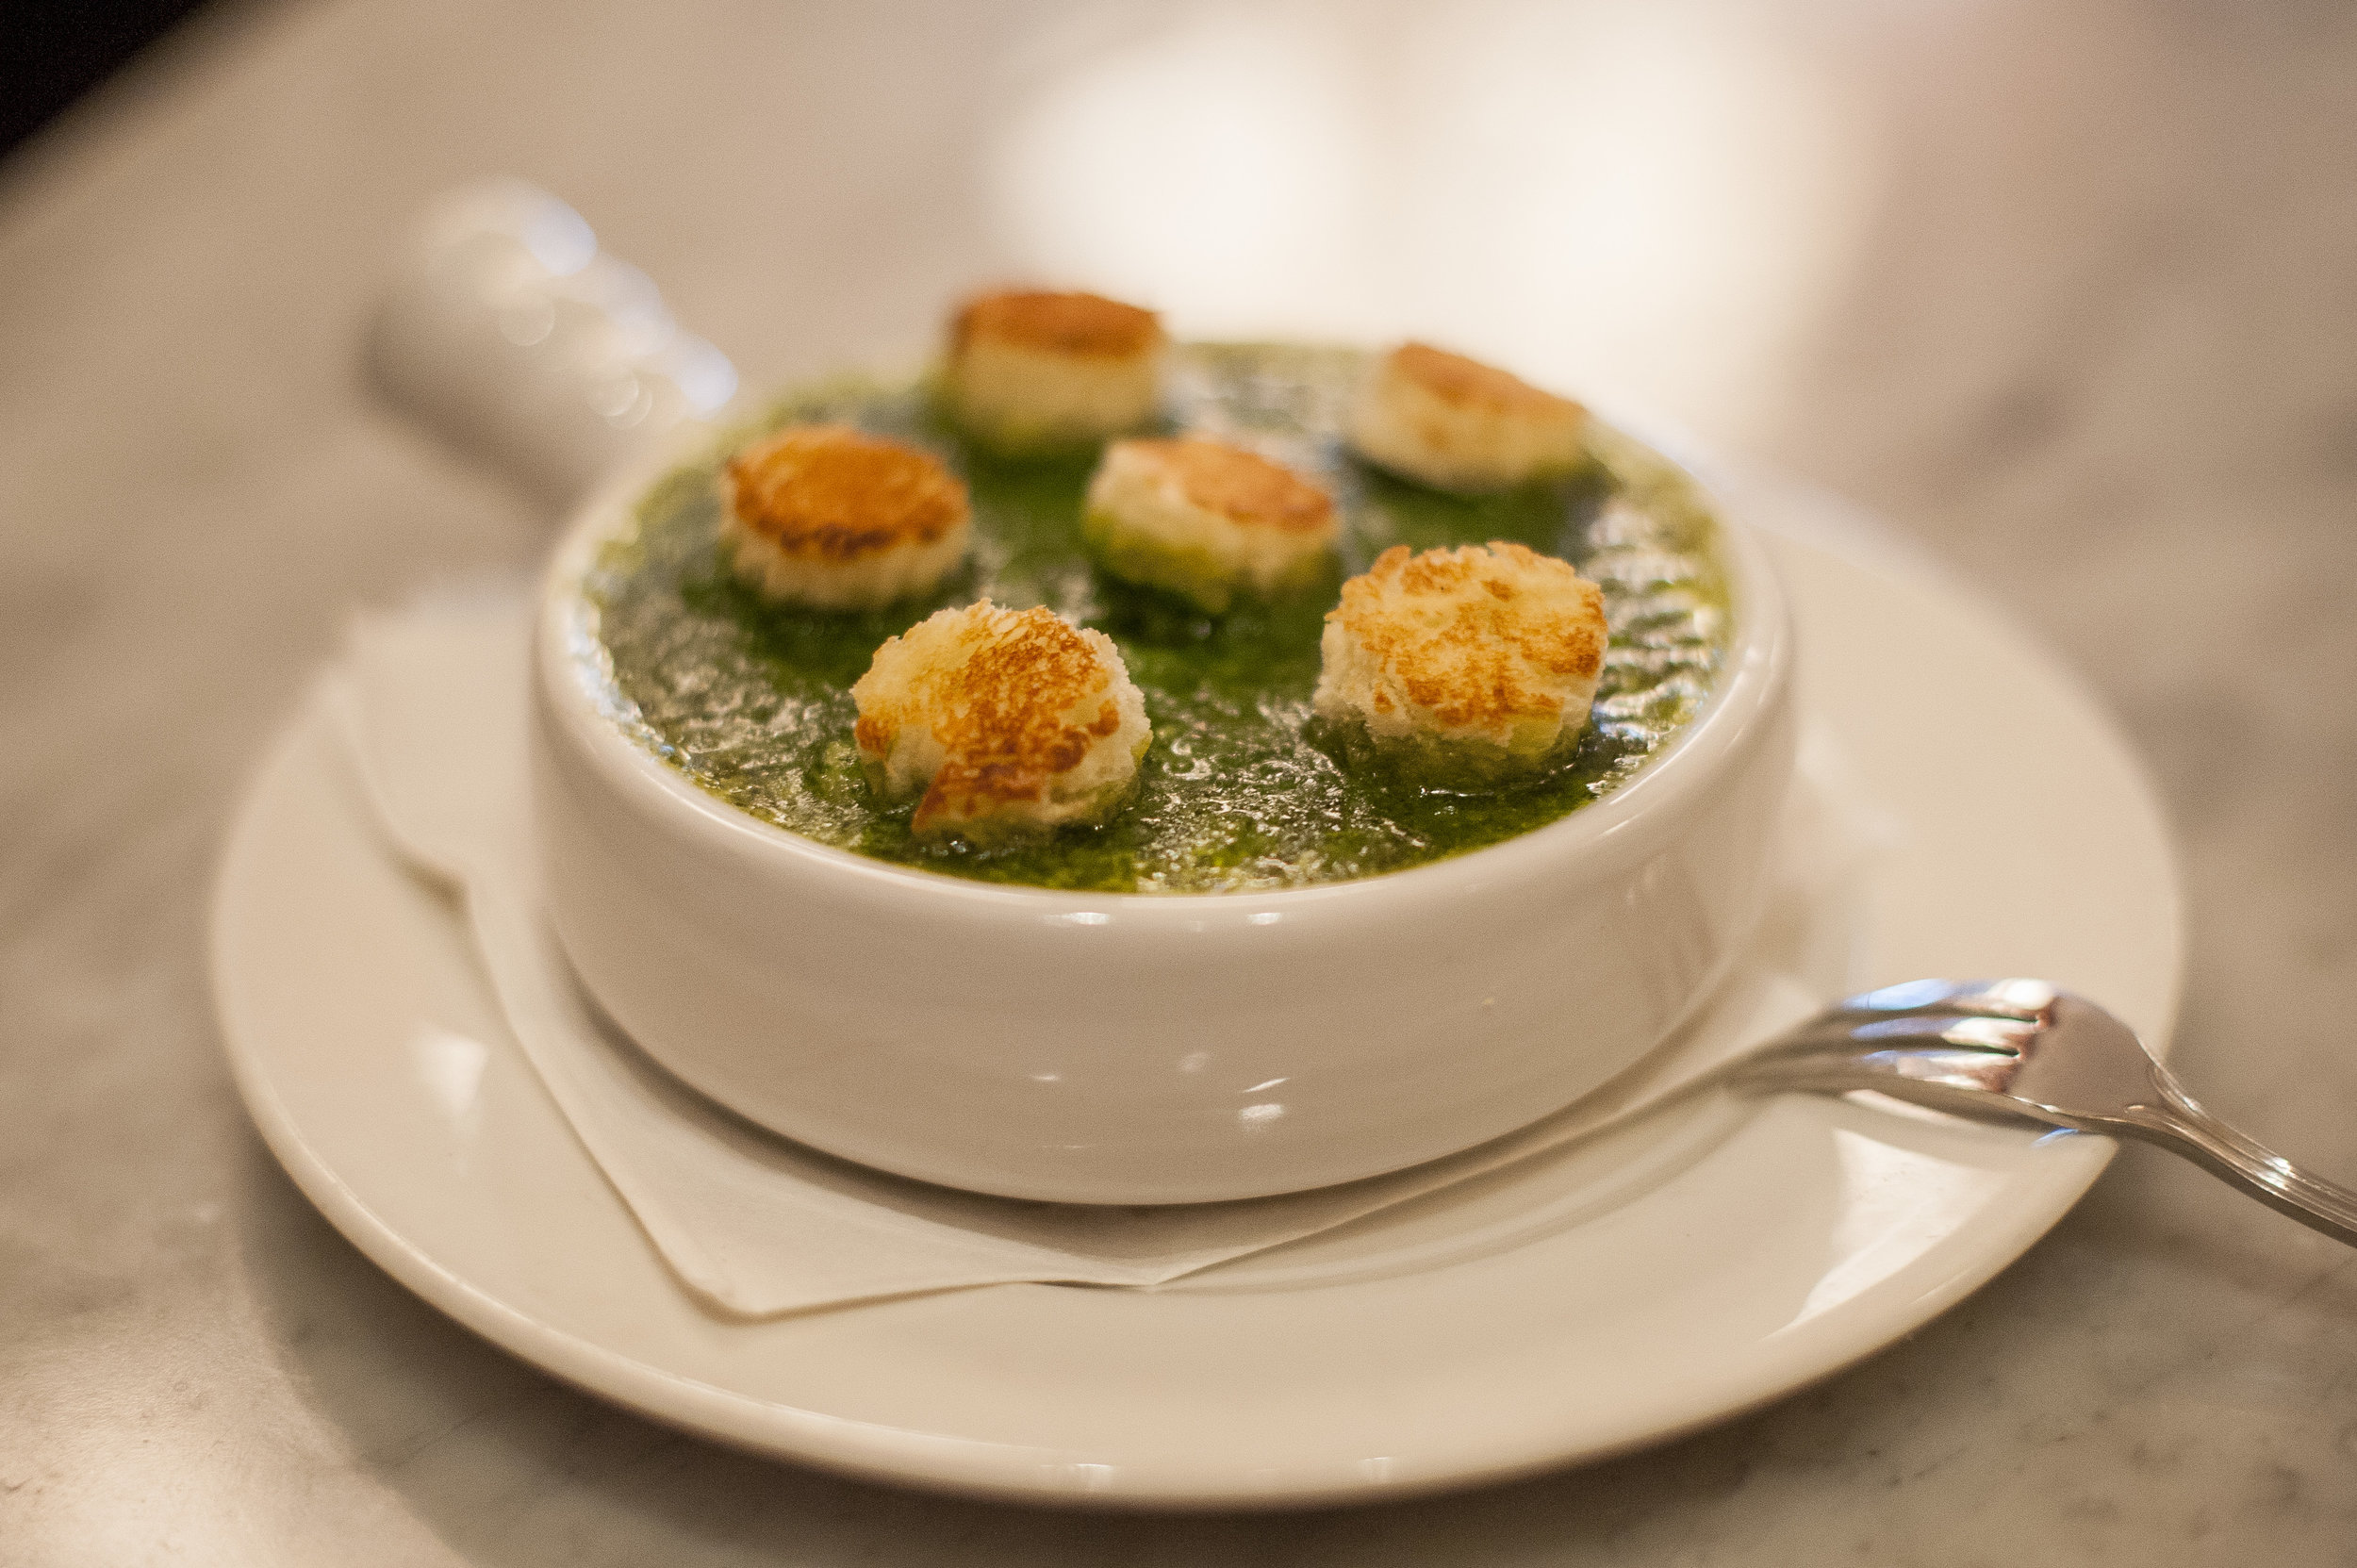 An authentic take on a French staple, the Escargots Persilles are baked snails and garlic herb butter, topped with bread croutons.